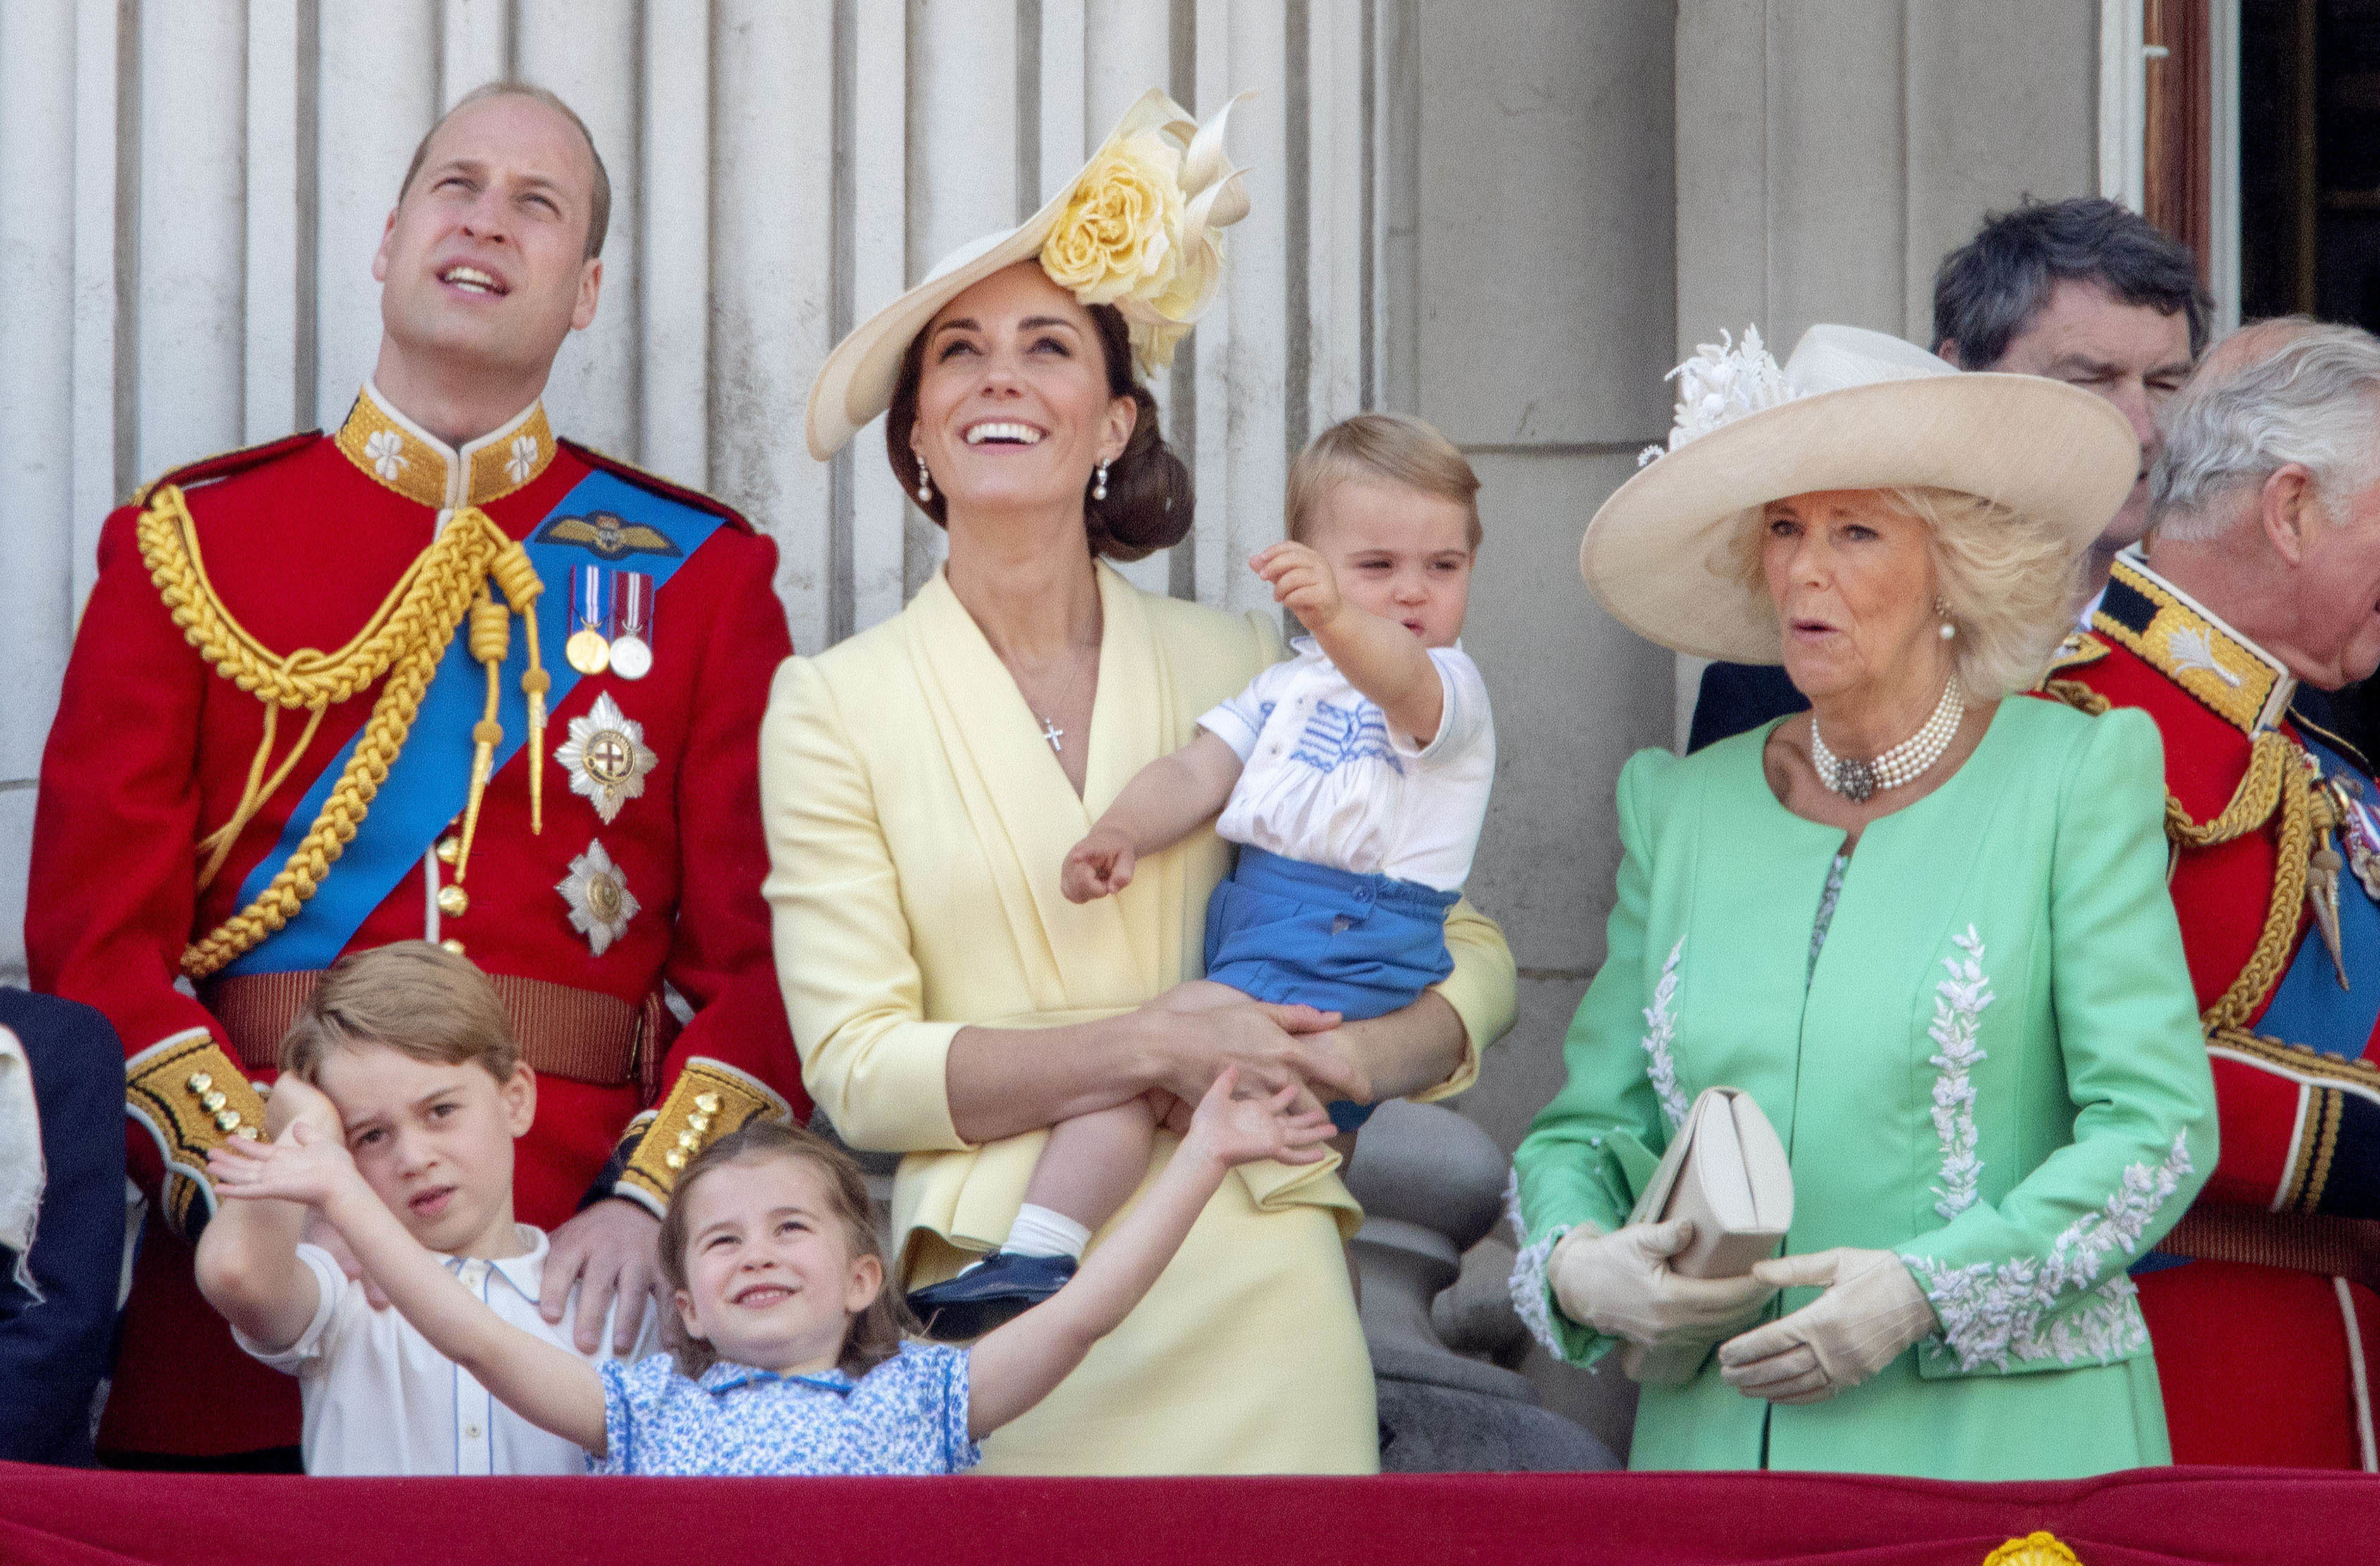 Prince William reveals concern for Prince George, Princess Charlotte and Prince Louis